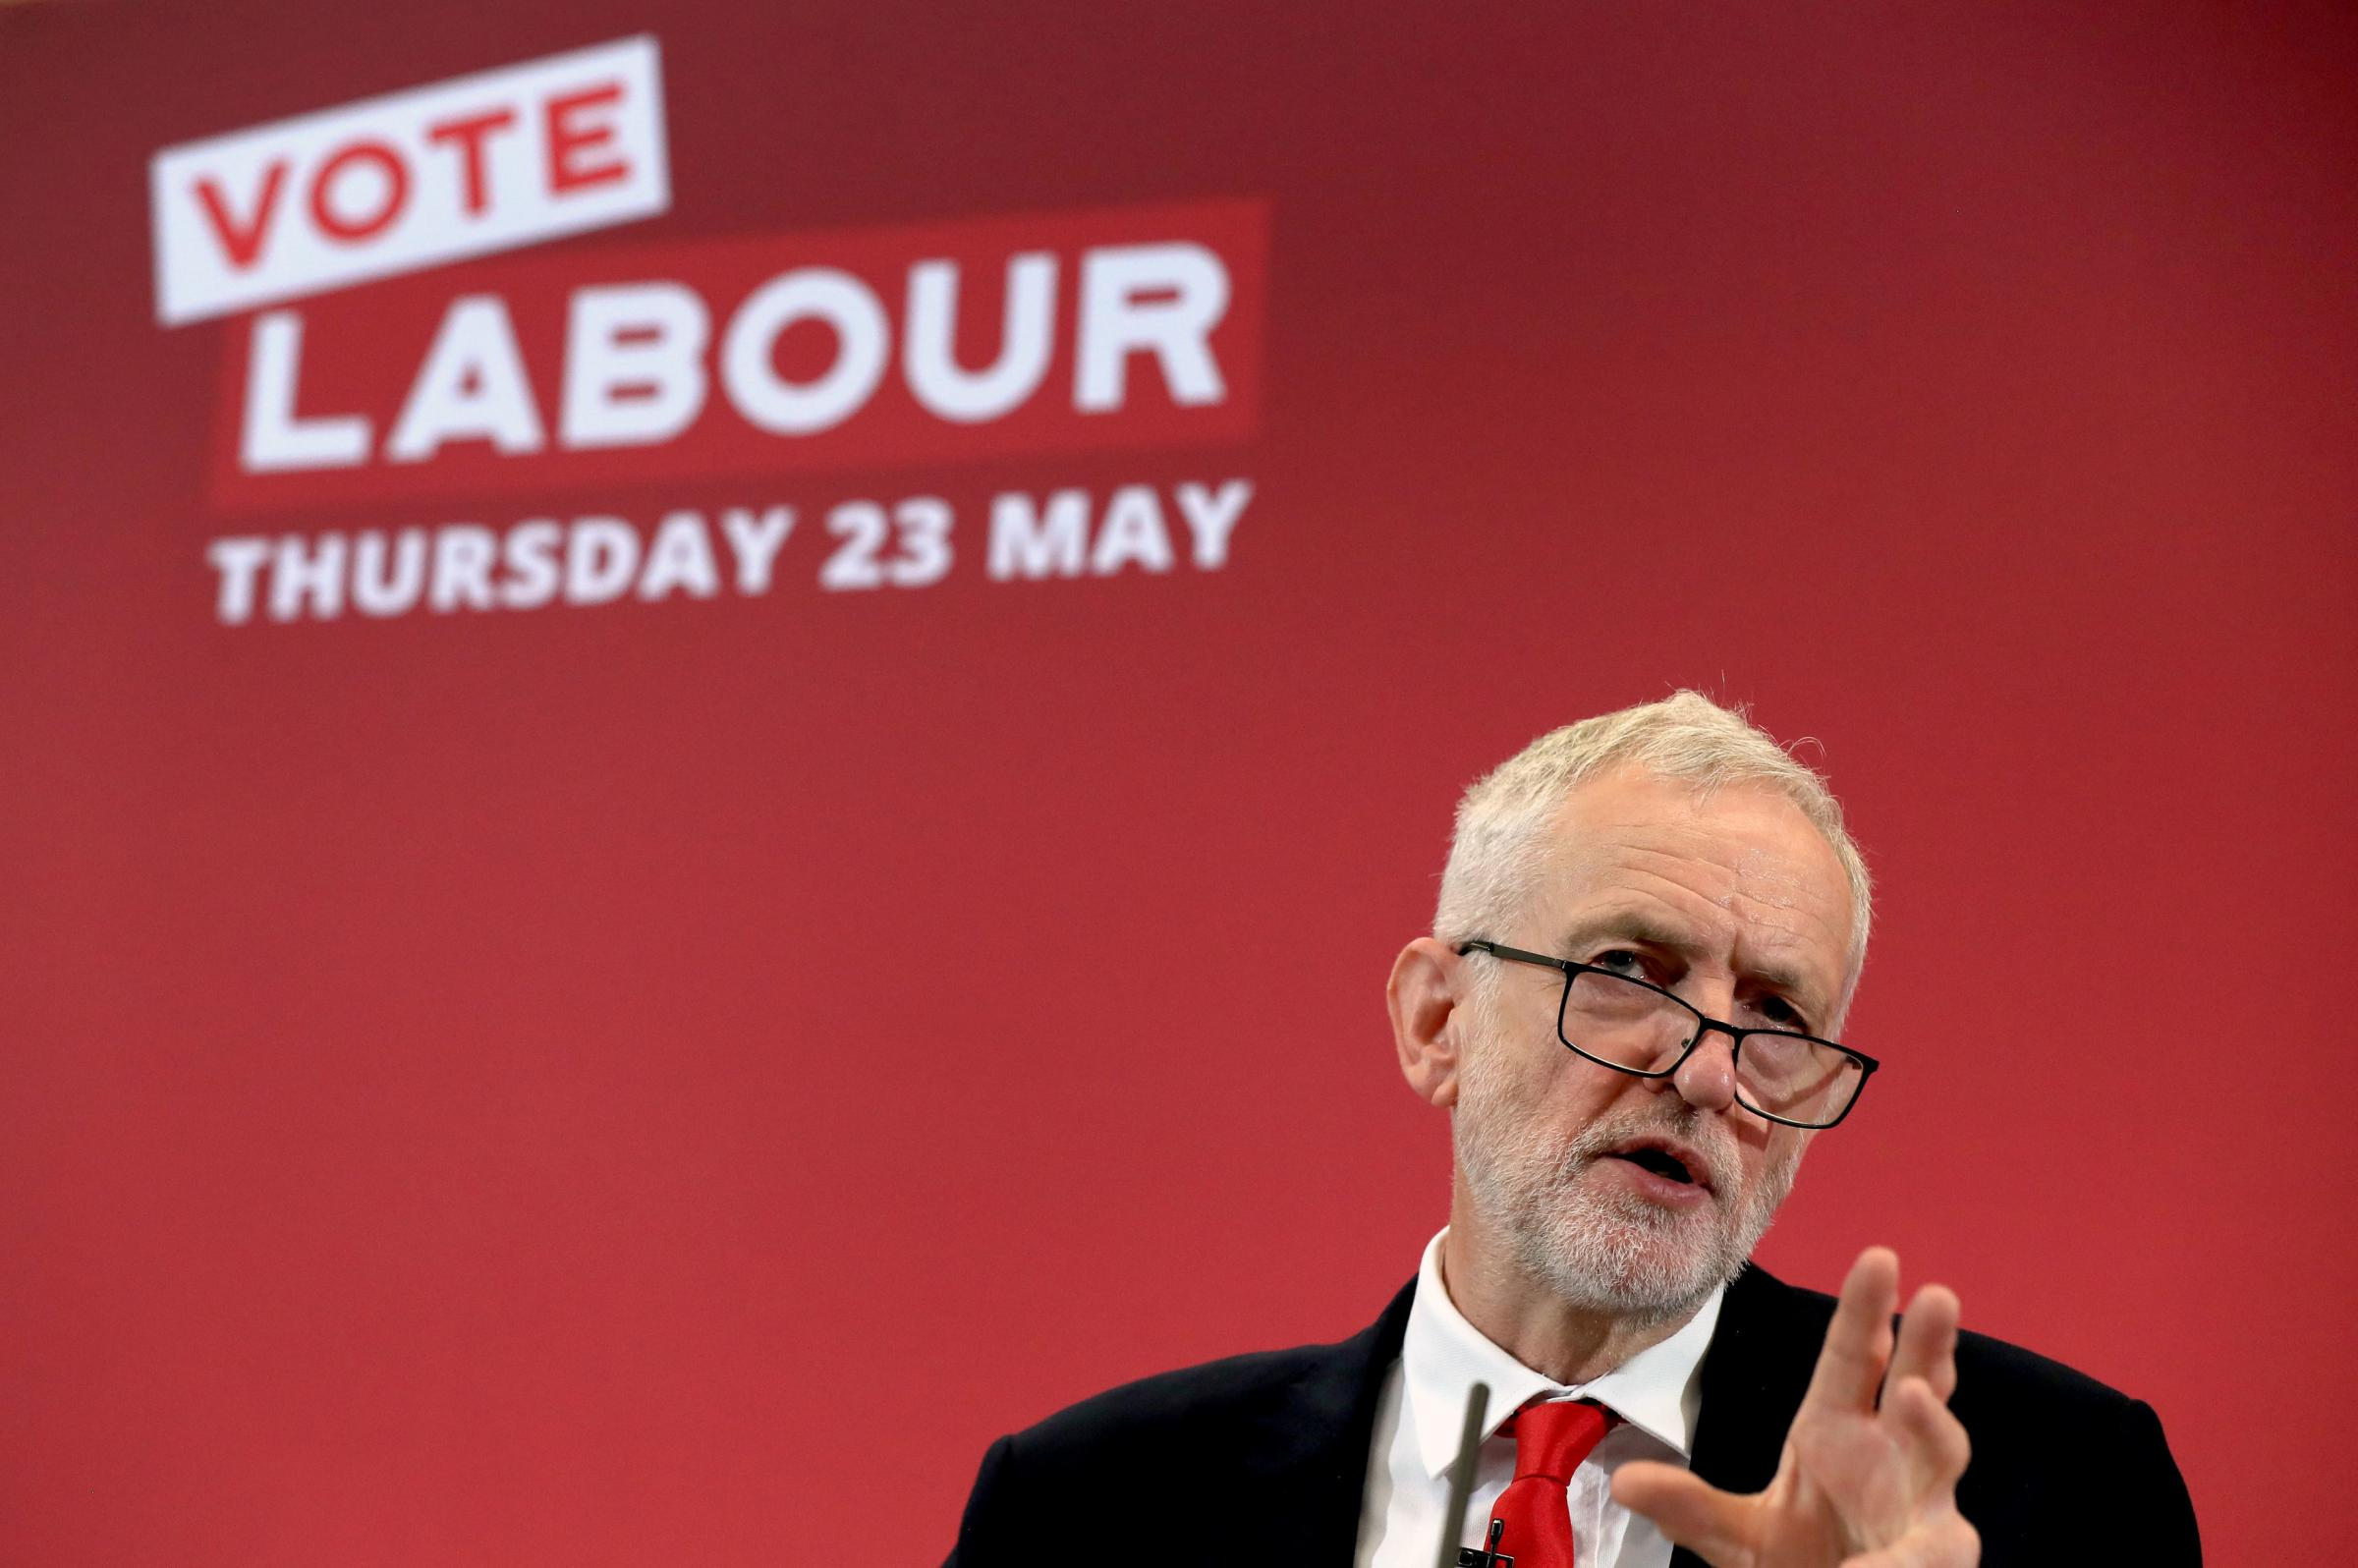 Don't do it! Leader Jeremy Corbyn asks people to support Labour at the party's European election campaign launch, but Herefordshire for Europe say you shouldn't.